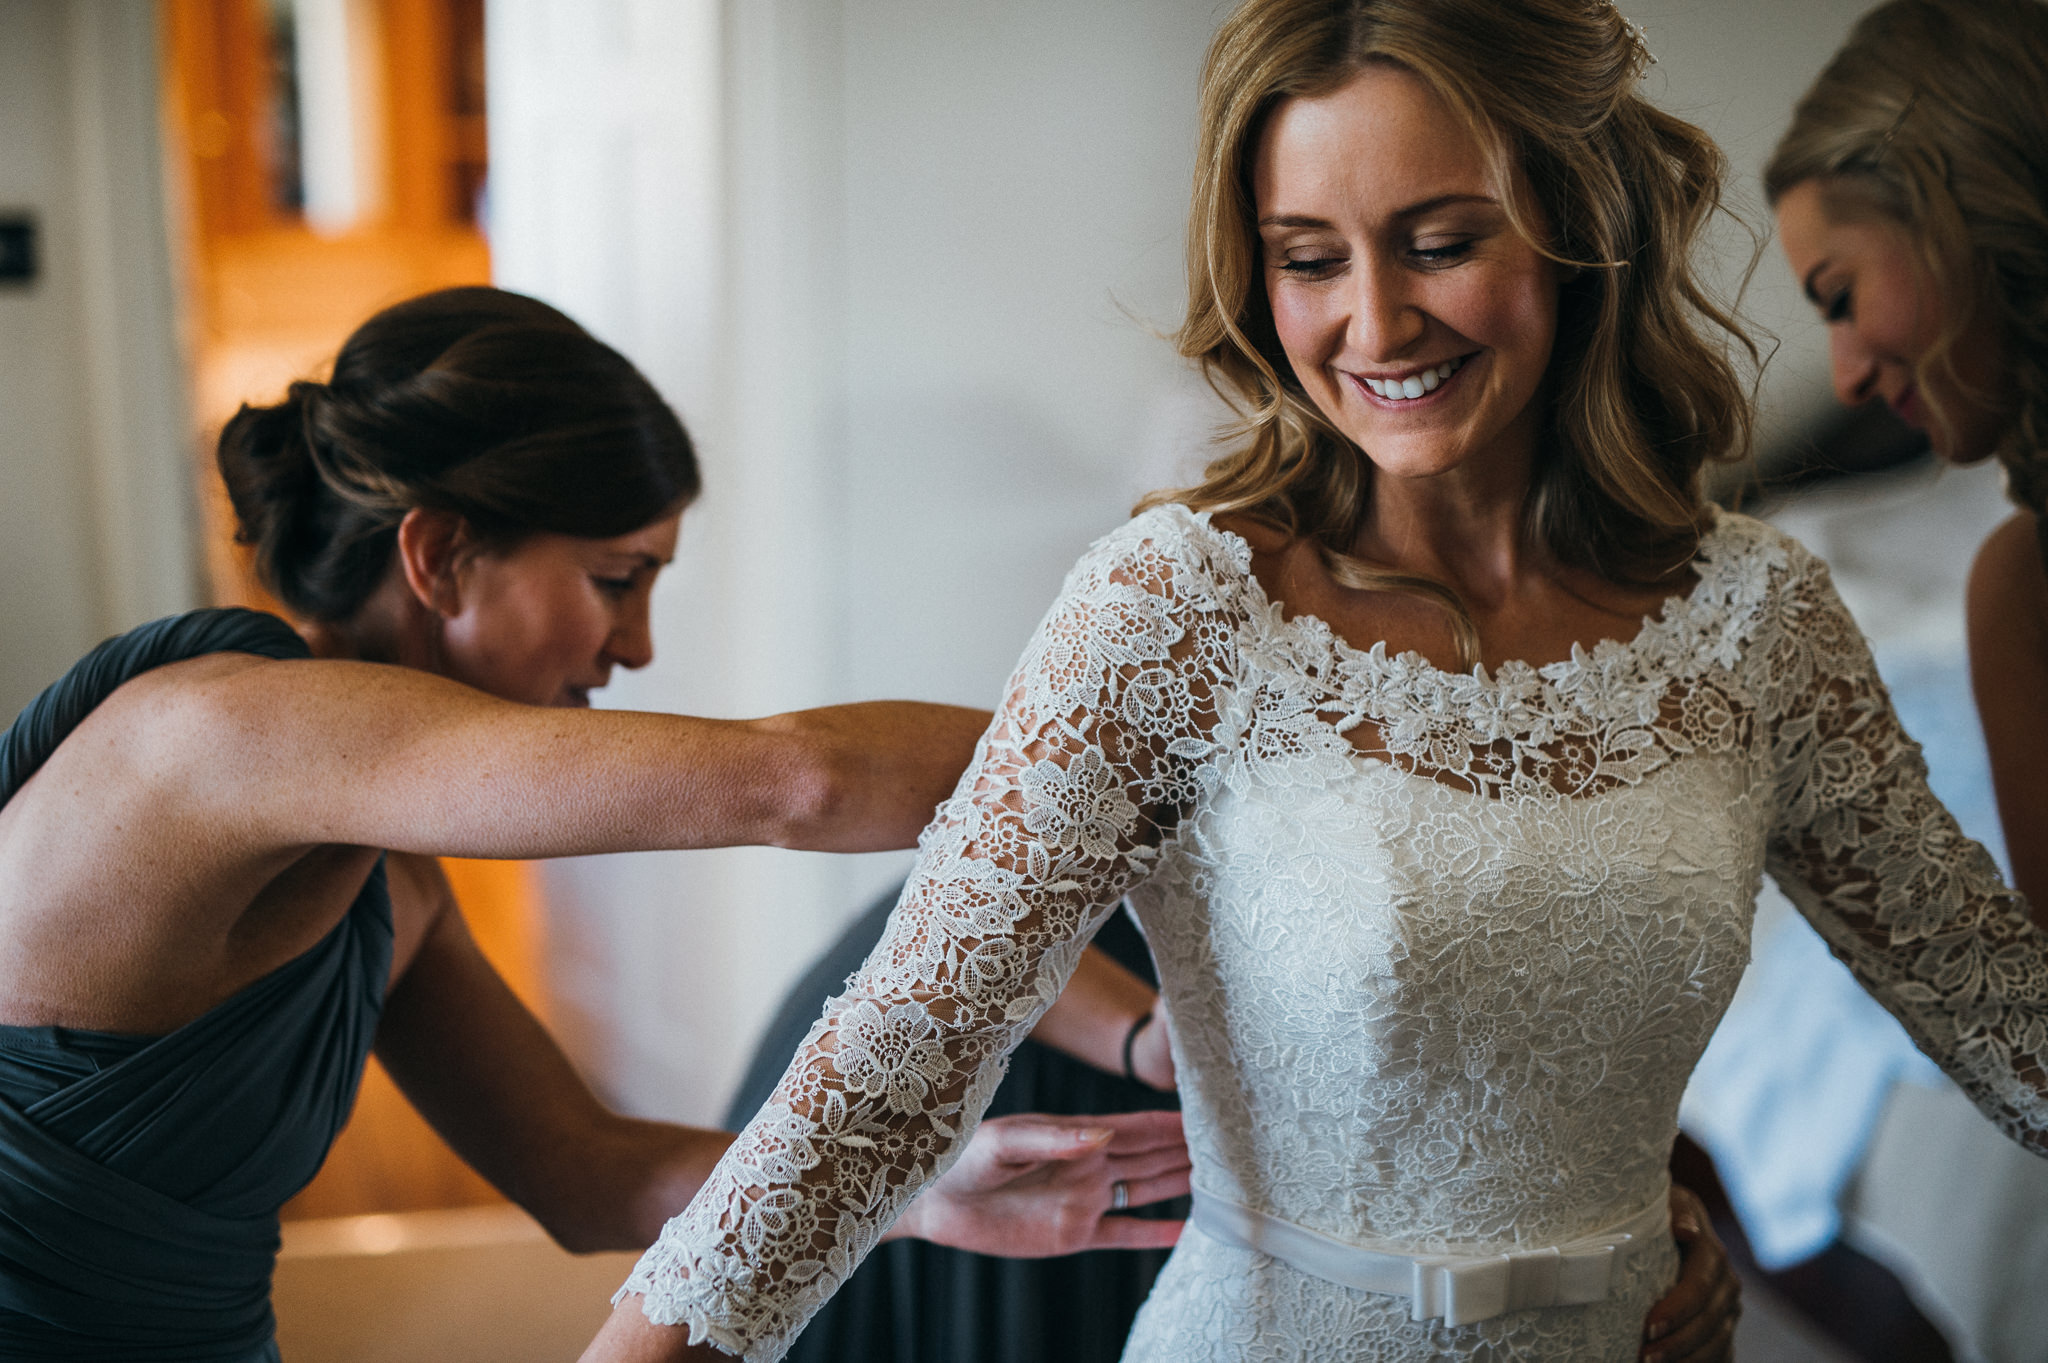 Bride excited to be putting wedding dress on